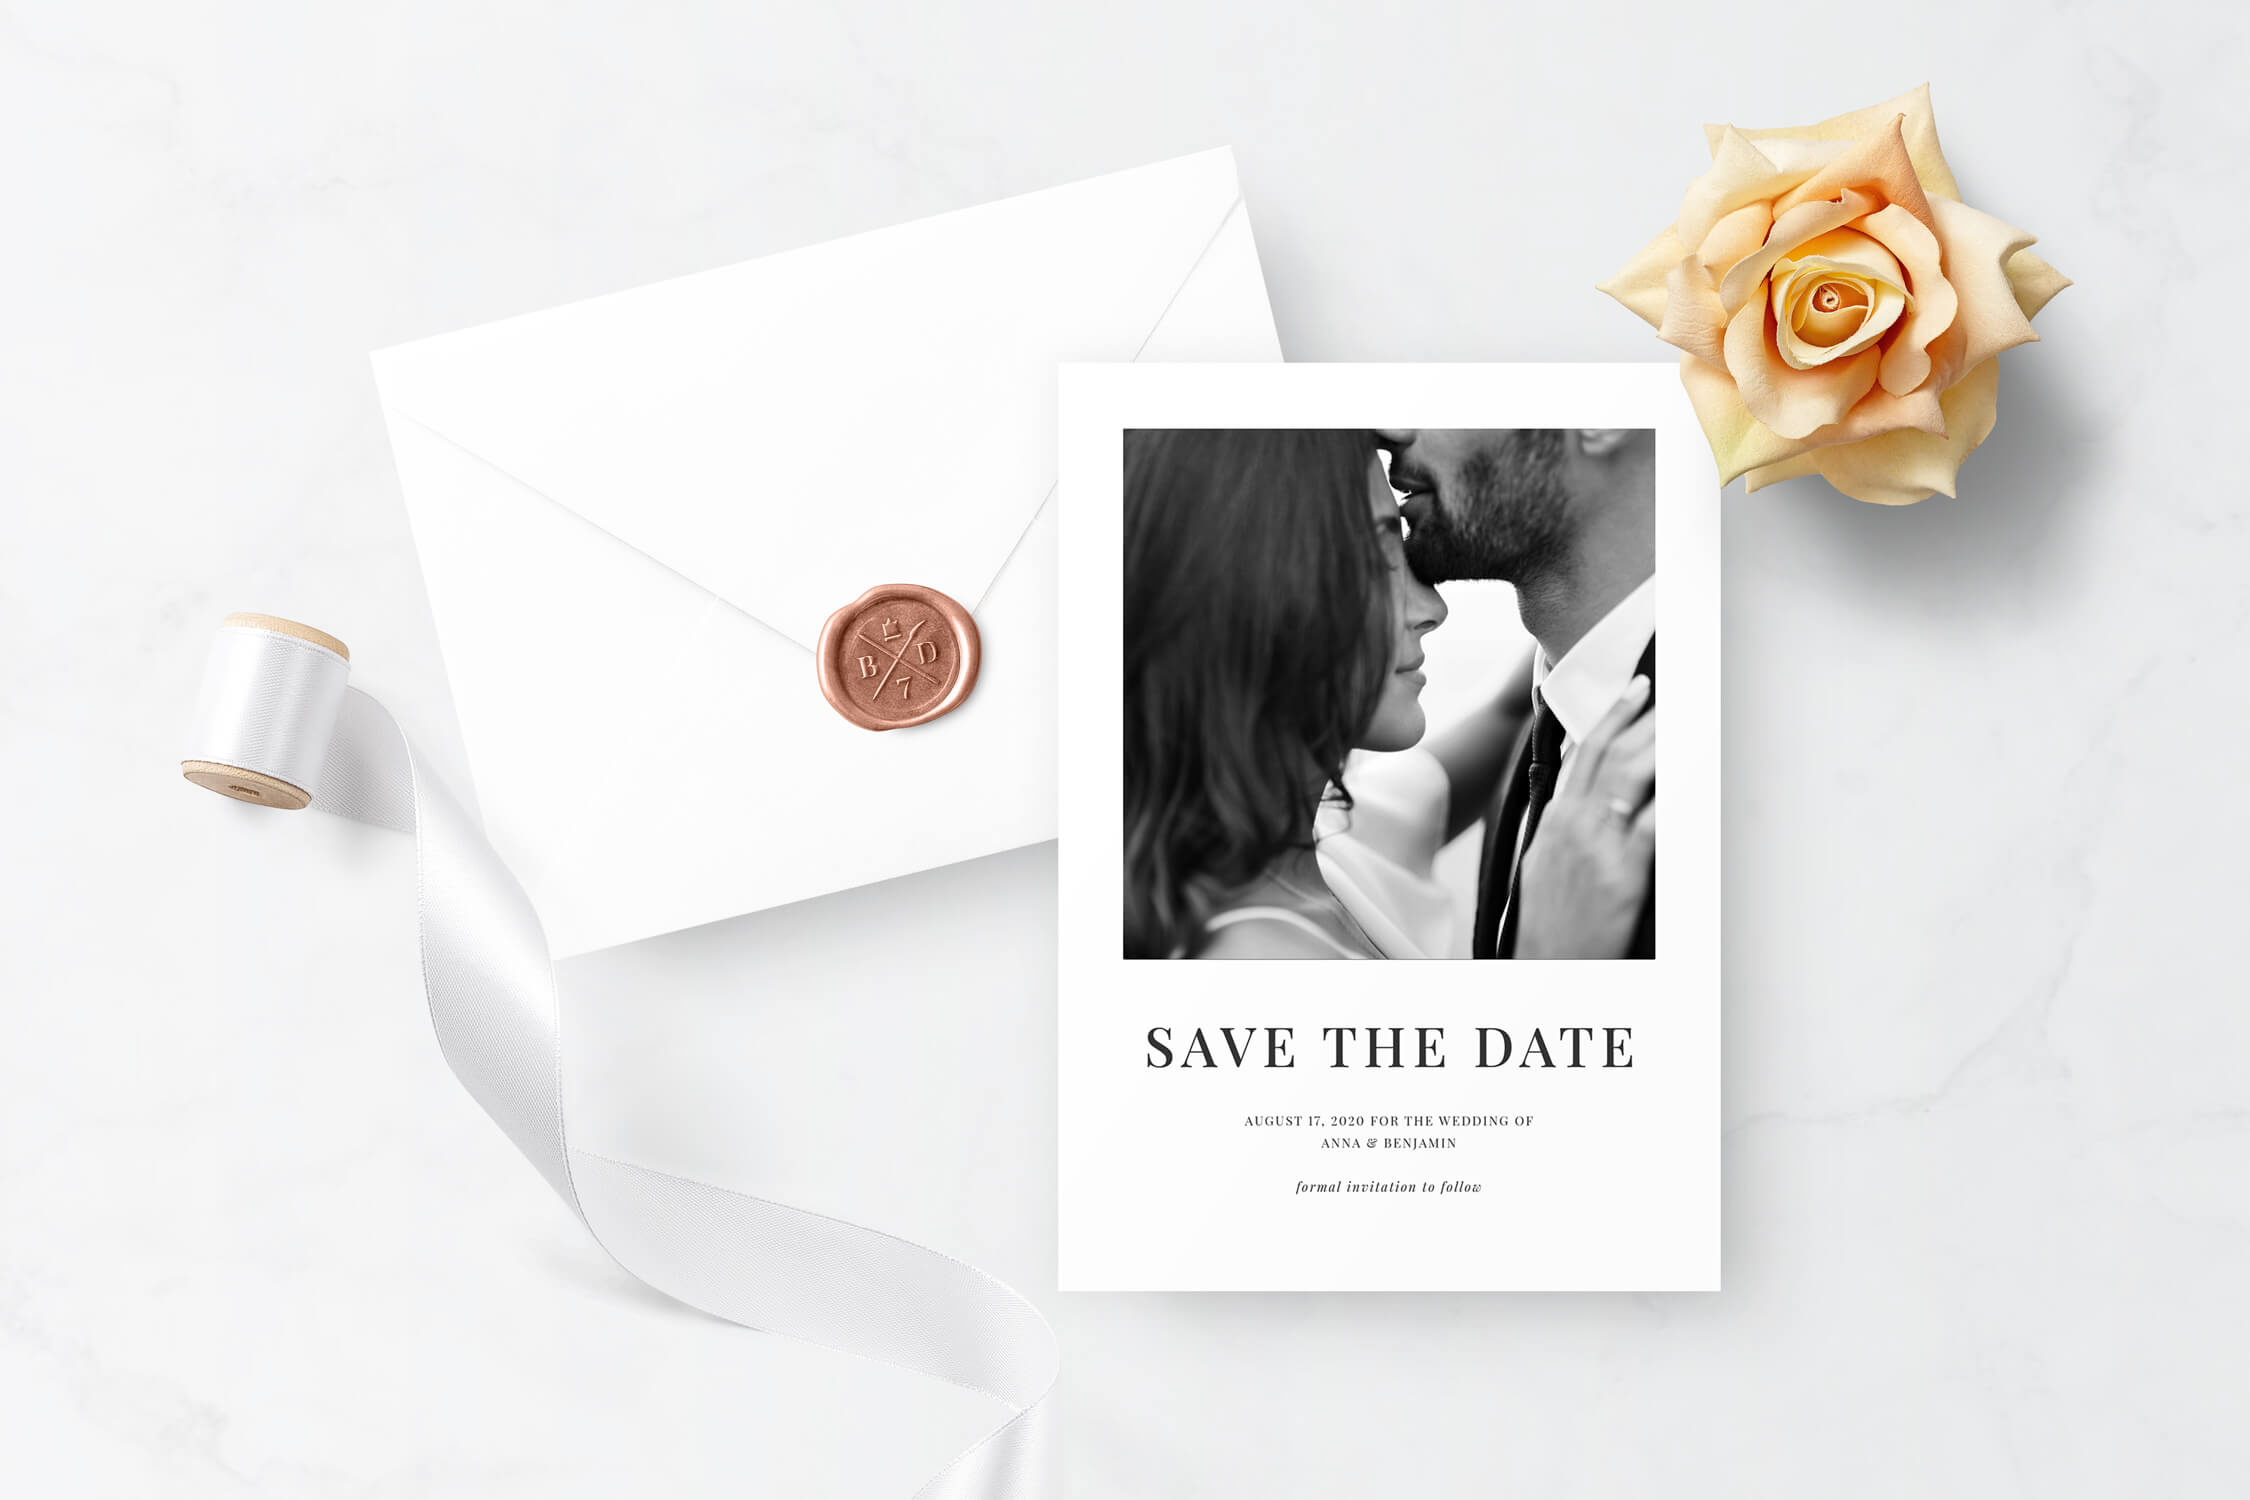 Basari Design - Save the date 006